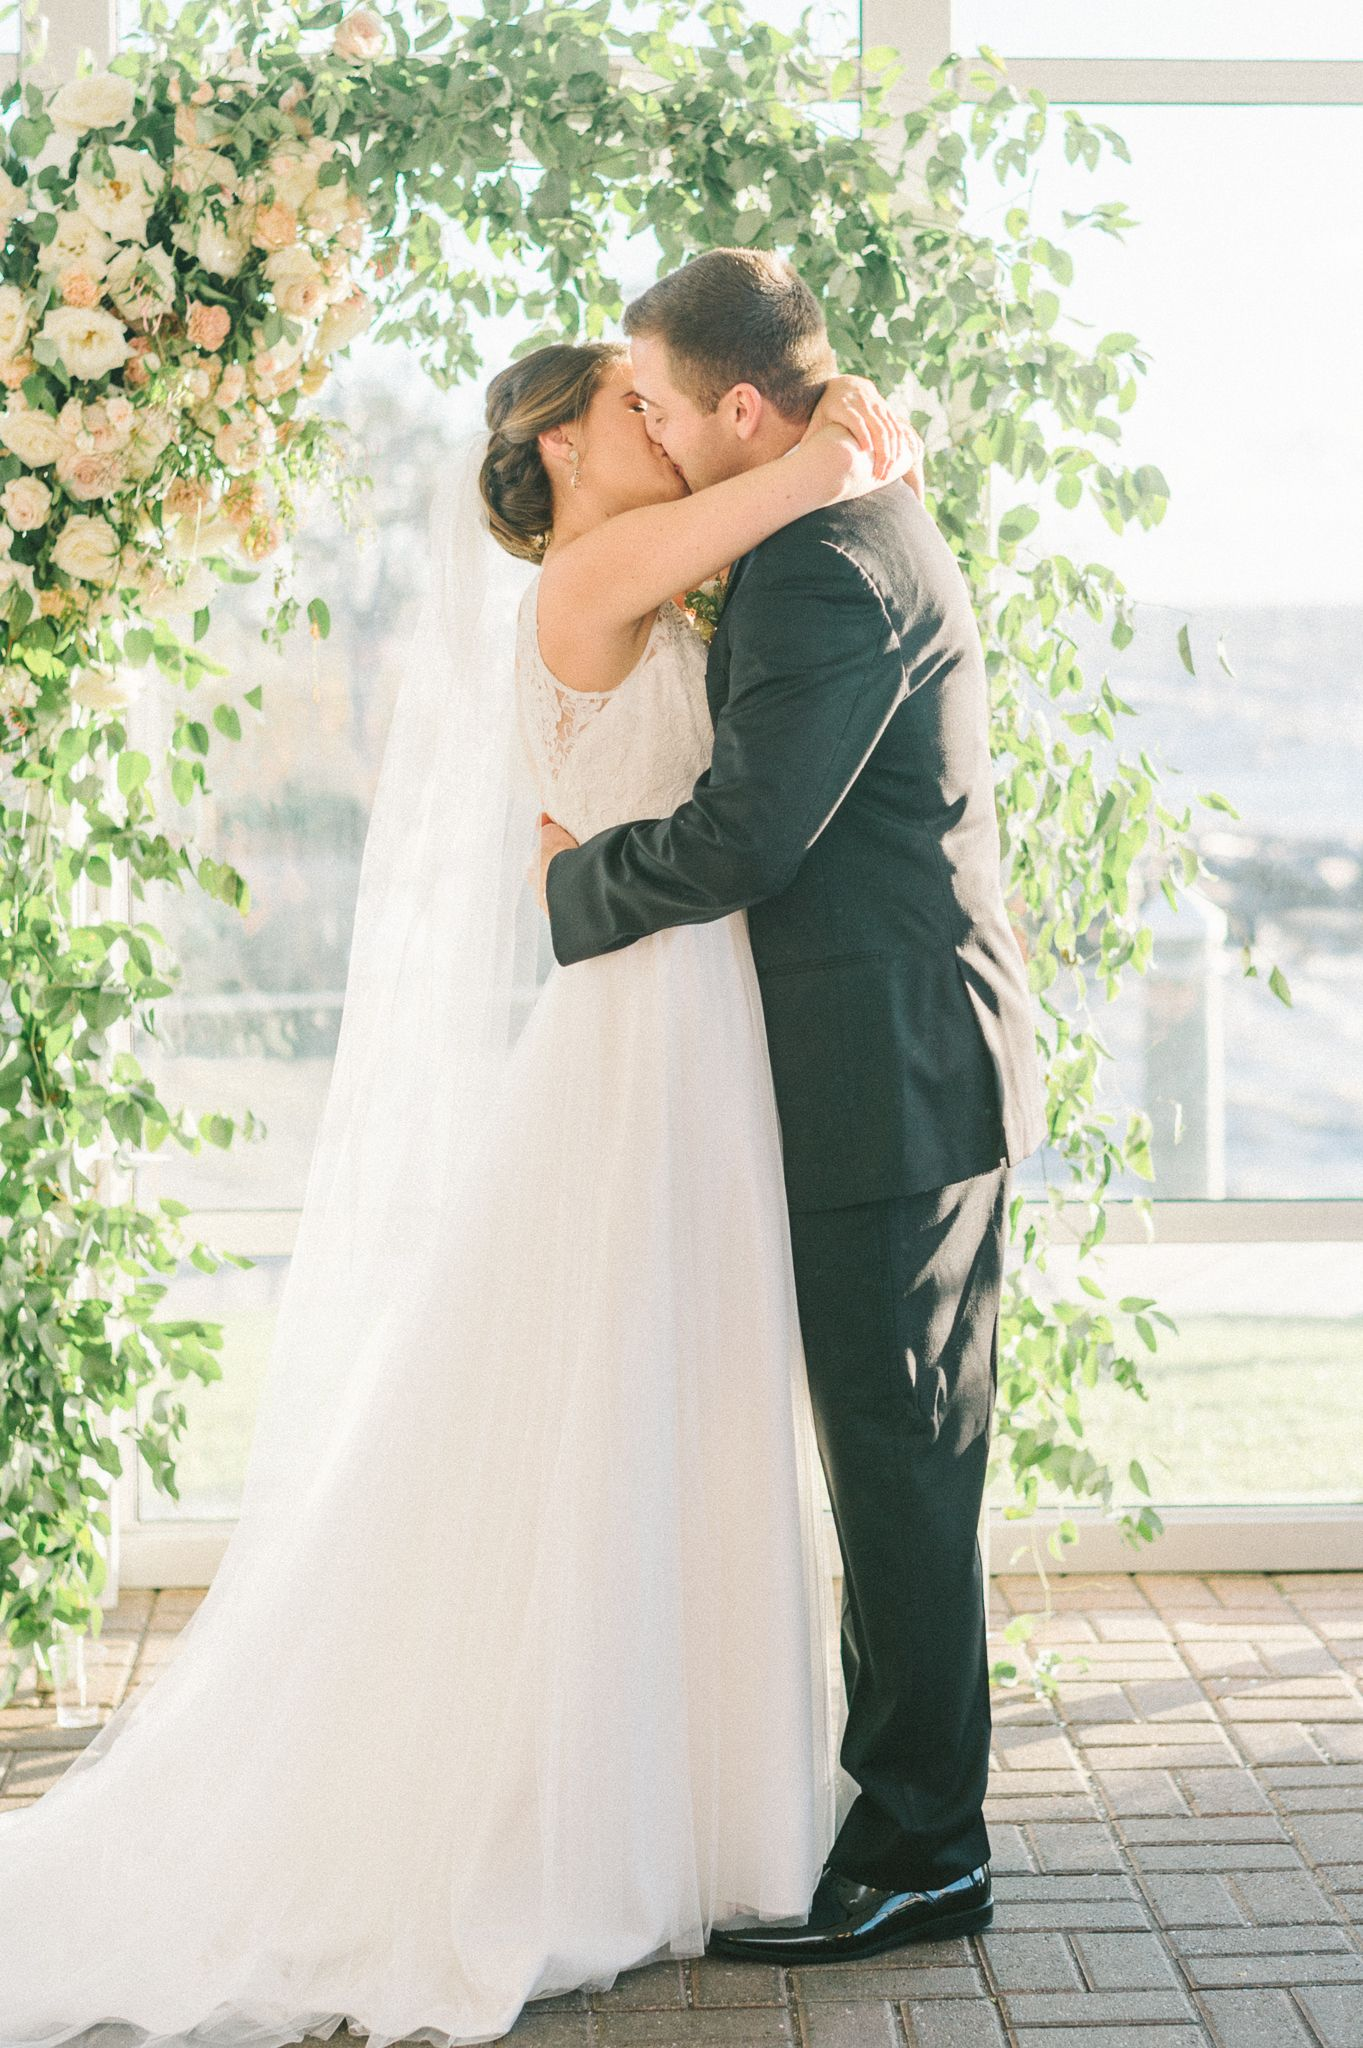 Definition of timeless Timeless Elegance This Maryland Fall Fete Is The Definition Of Timeless Pinterest This Maryland Fall Fete Is The Definition Of Timeless Wedding